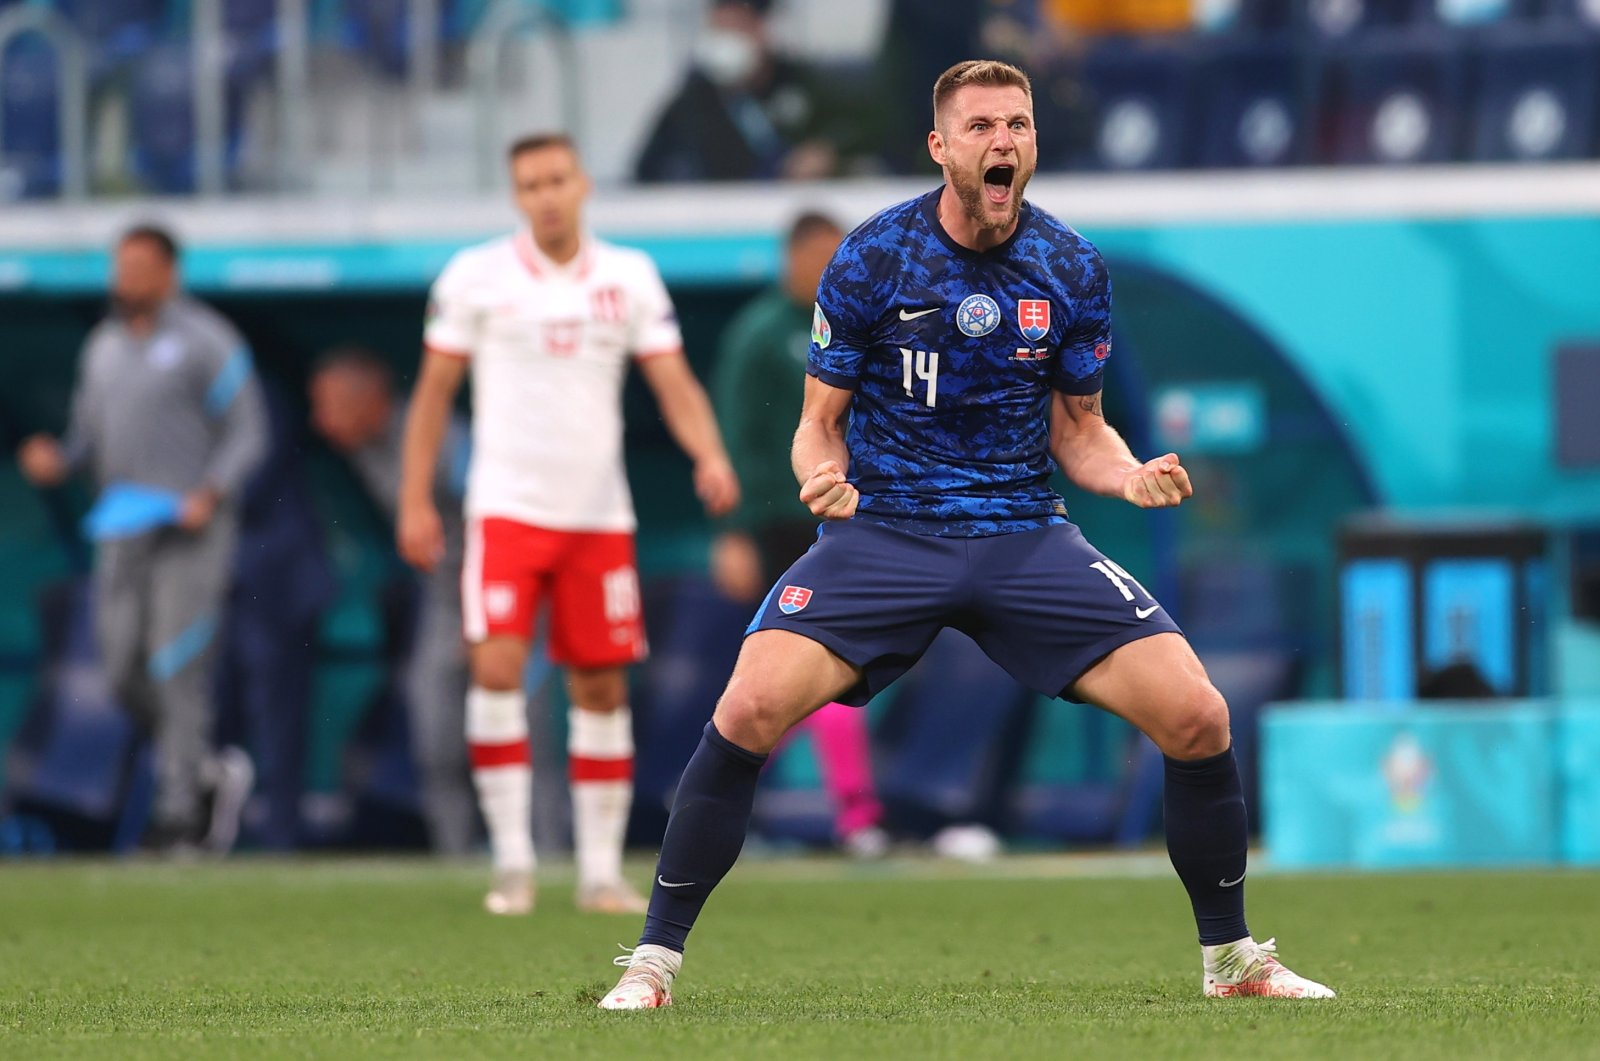 Milan Skriniar of Slovakia celebrates his team's second goal after the UEFA Euro 2020 group E preliminary round soccer match between Poland and Slovakia at Gazprom Arena Stadium in St. Petersburg, Russia, June 14, 2021. (EPA / Lars Baron)